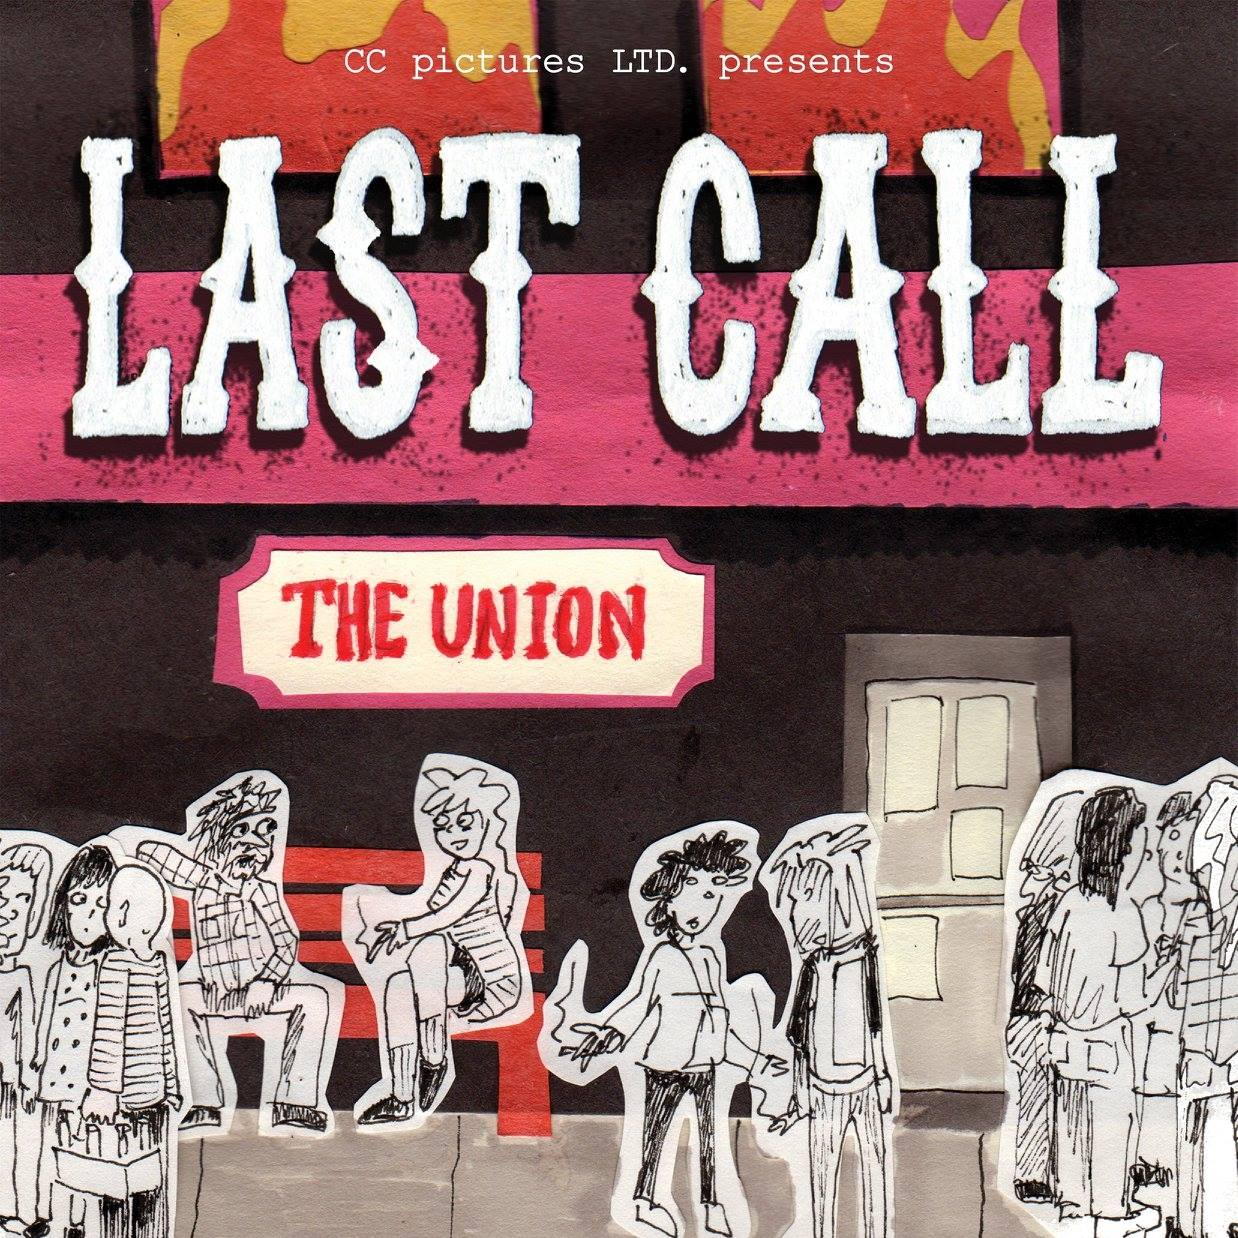 Last Call documentary poster